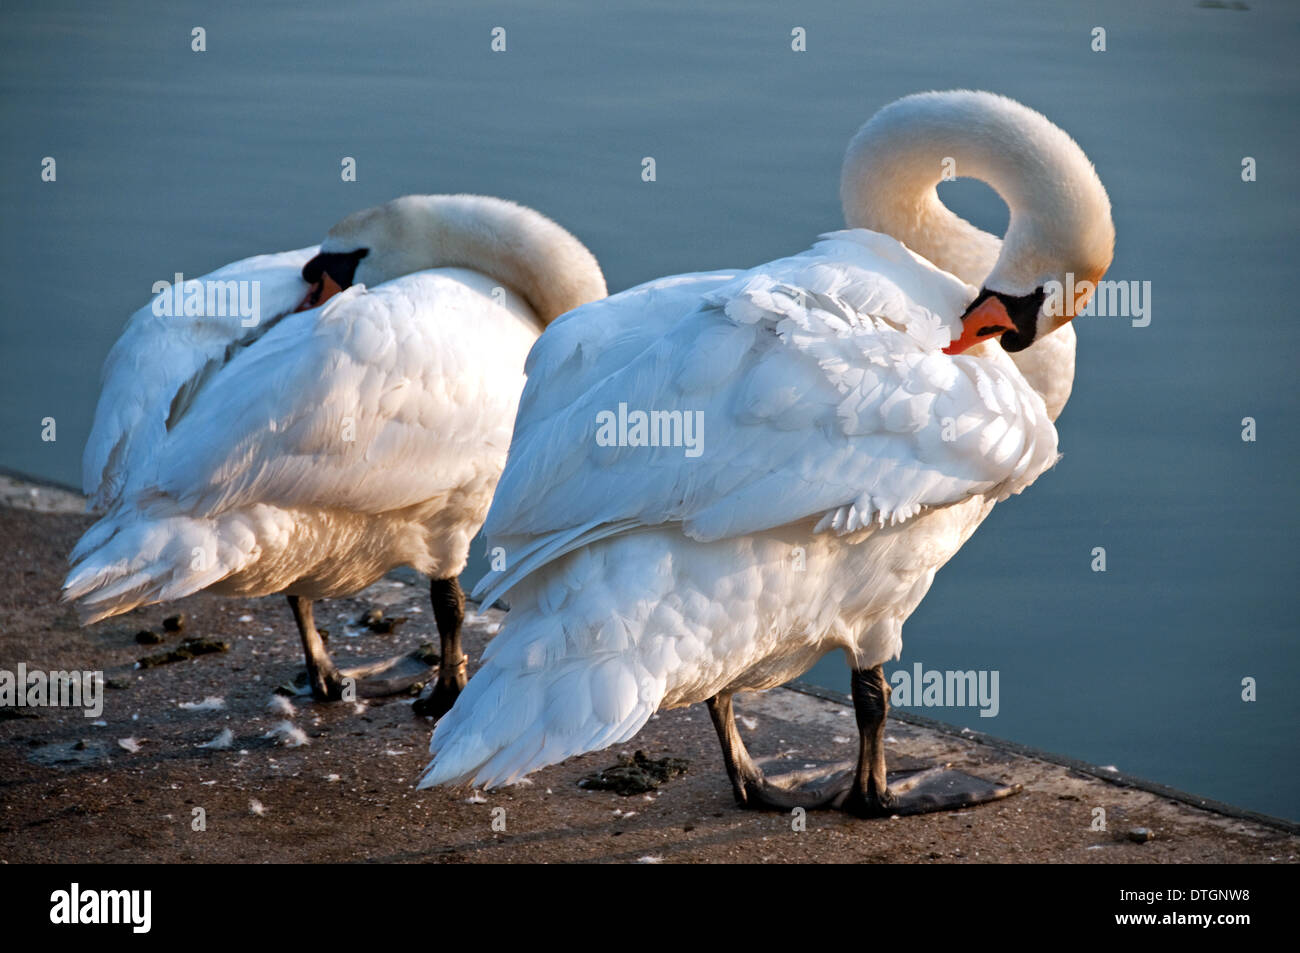 Two Swans Preening on Riverbank - Stock Image